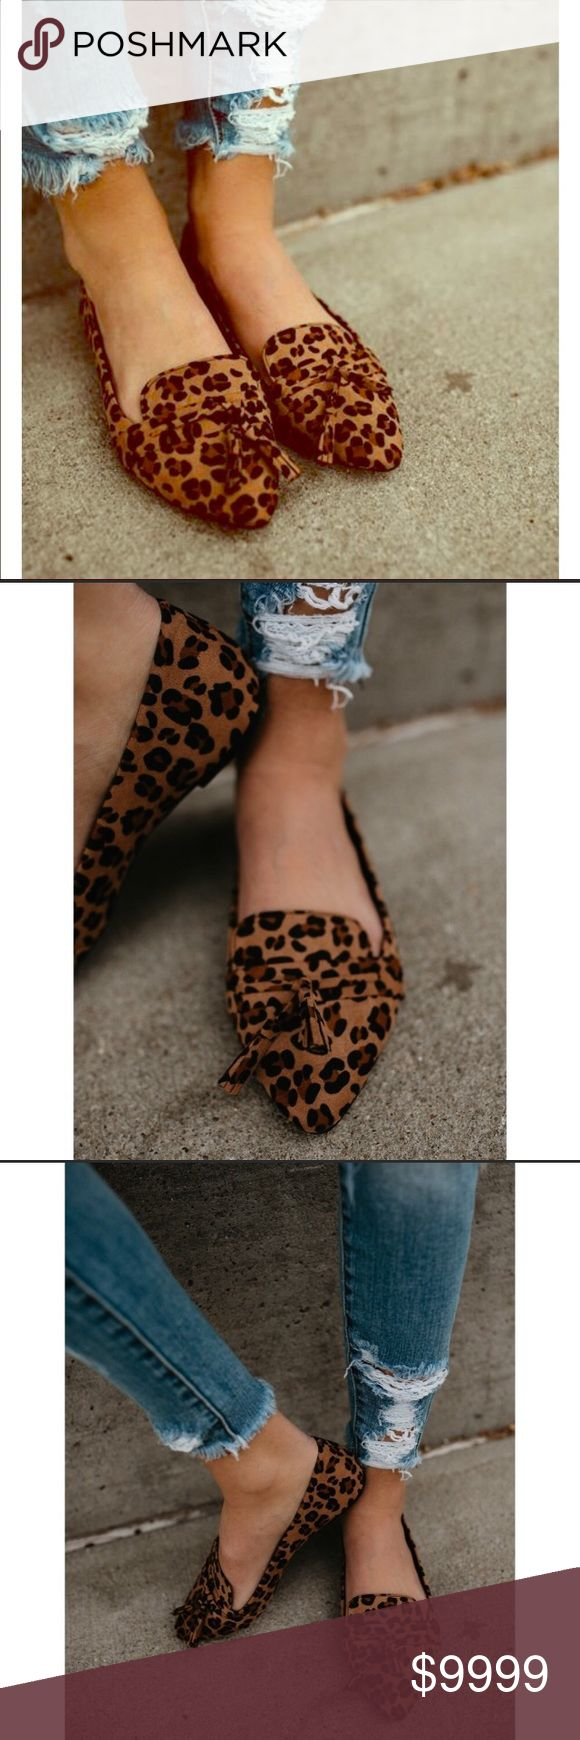 LEOPARD PRINT LOAFERS The adorable leopard print loafers are the absolute statement maker!!! Show off in these cuties with a pair of skinny jeans & basic white T-shirt or why not leggings & a slouchy sweater...whatever your style choice, you can't go wrong!! 🎀 Shoes Flats & Loafers